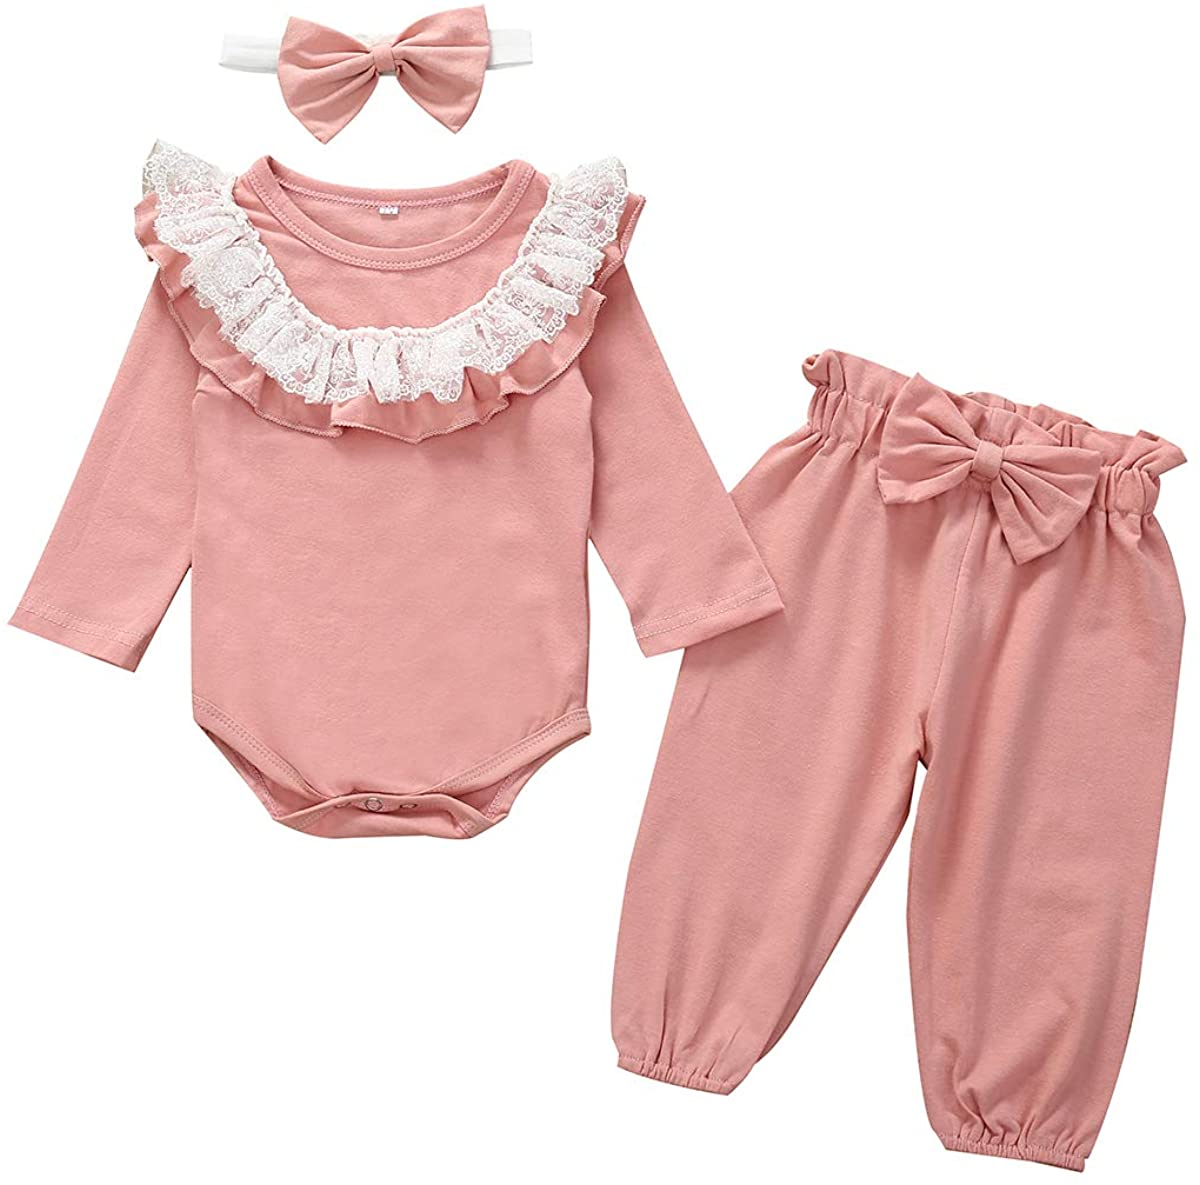 Argorgeous Newborn Baby Girls Clothes Long Sleeve Ruffle Romper Long Pants Headband Toddler Pink Fall 3Pcs Outfits